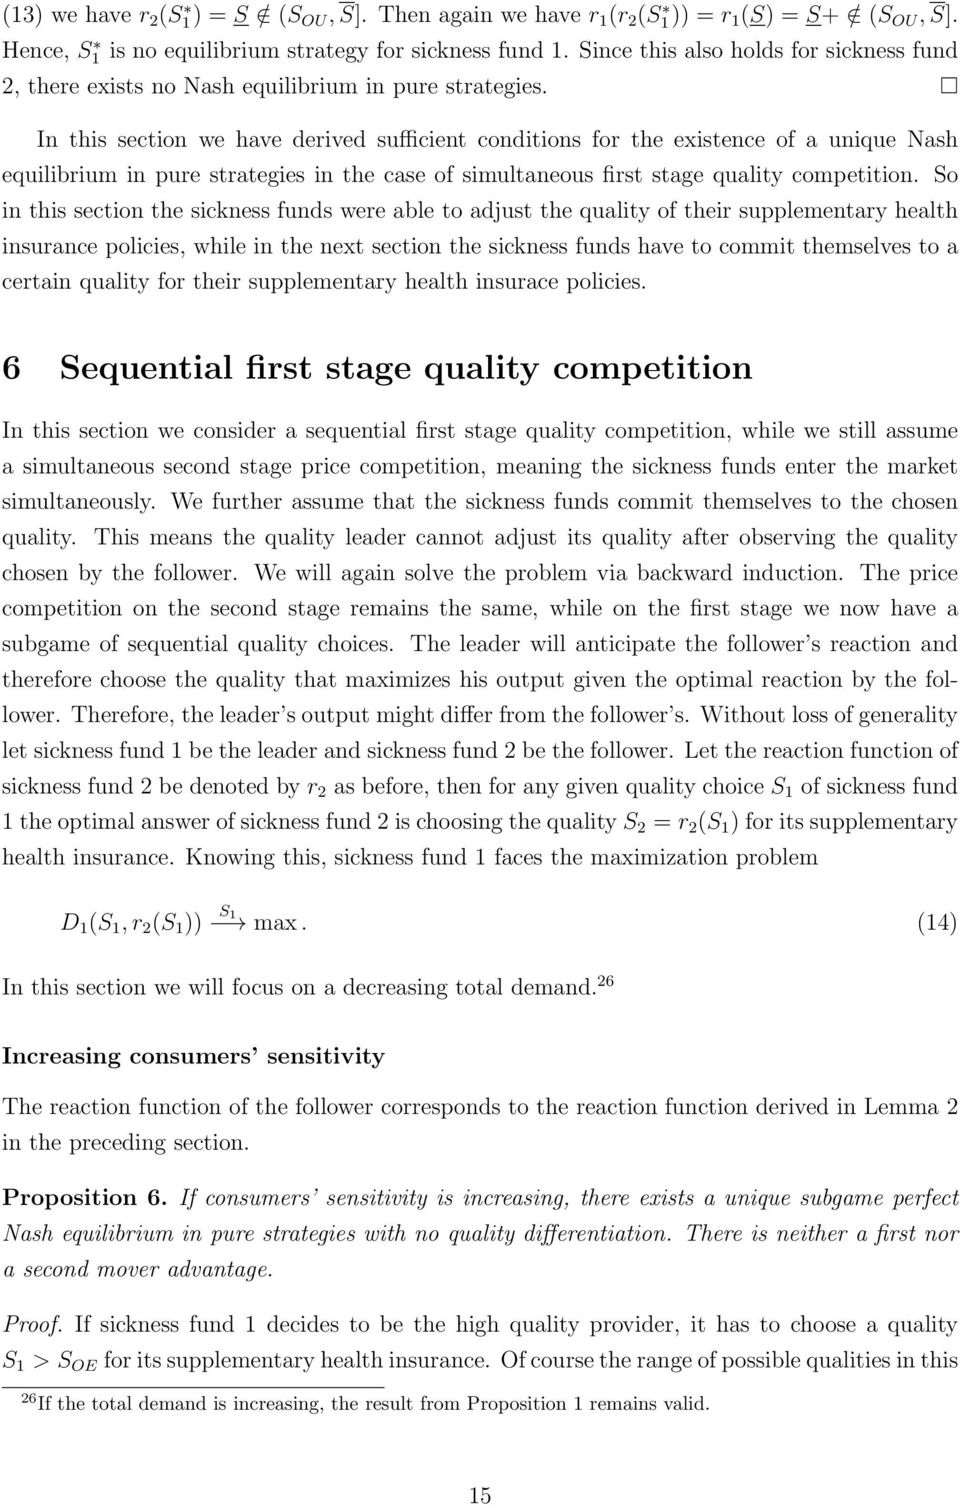 In this section we have derived sufficient conditions for the existence of a unique Nash equilibrium in pure strategies in the case of simultaneous first stage quality competition.